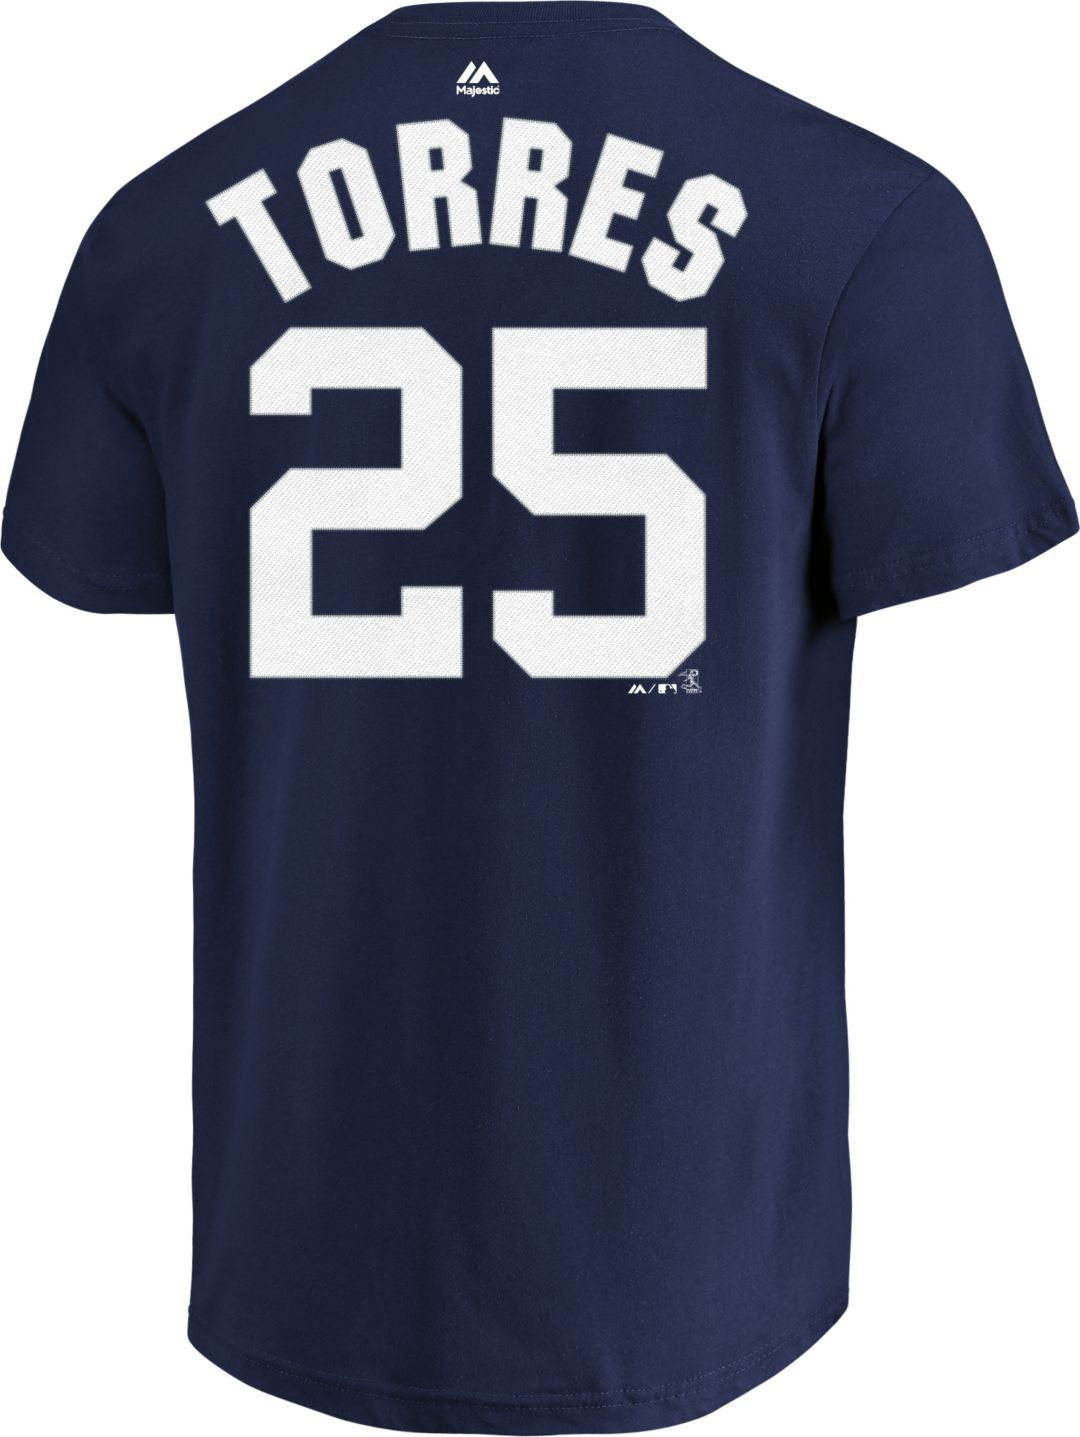 uk availability 4a139 1cf46 Majestic Men's New York Yankees Gleyber Torres #25 Navy T-Shirt